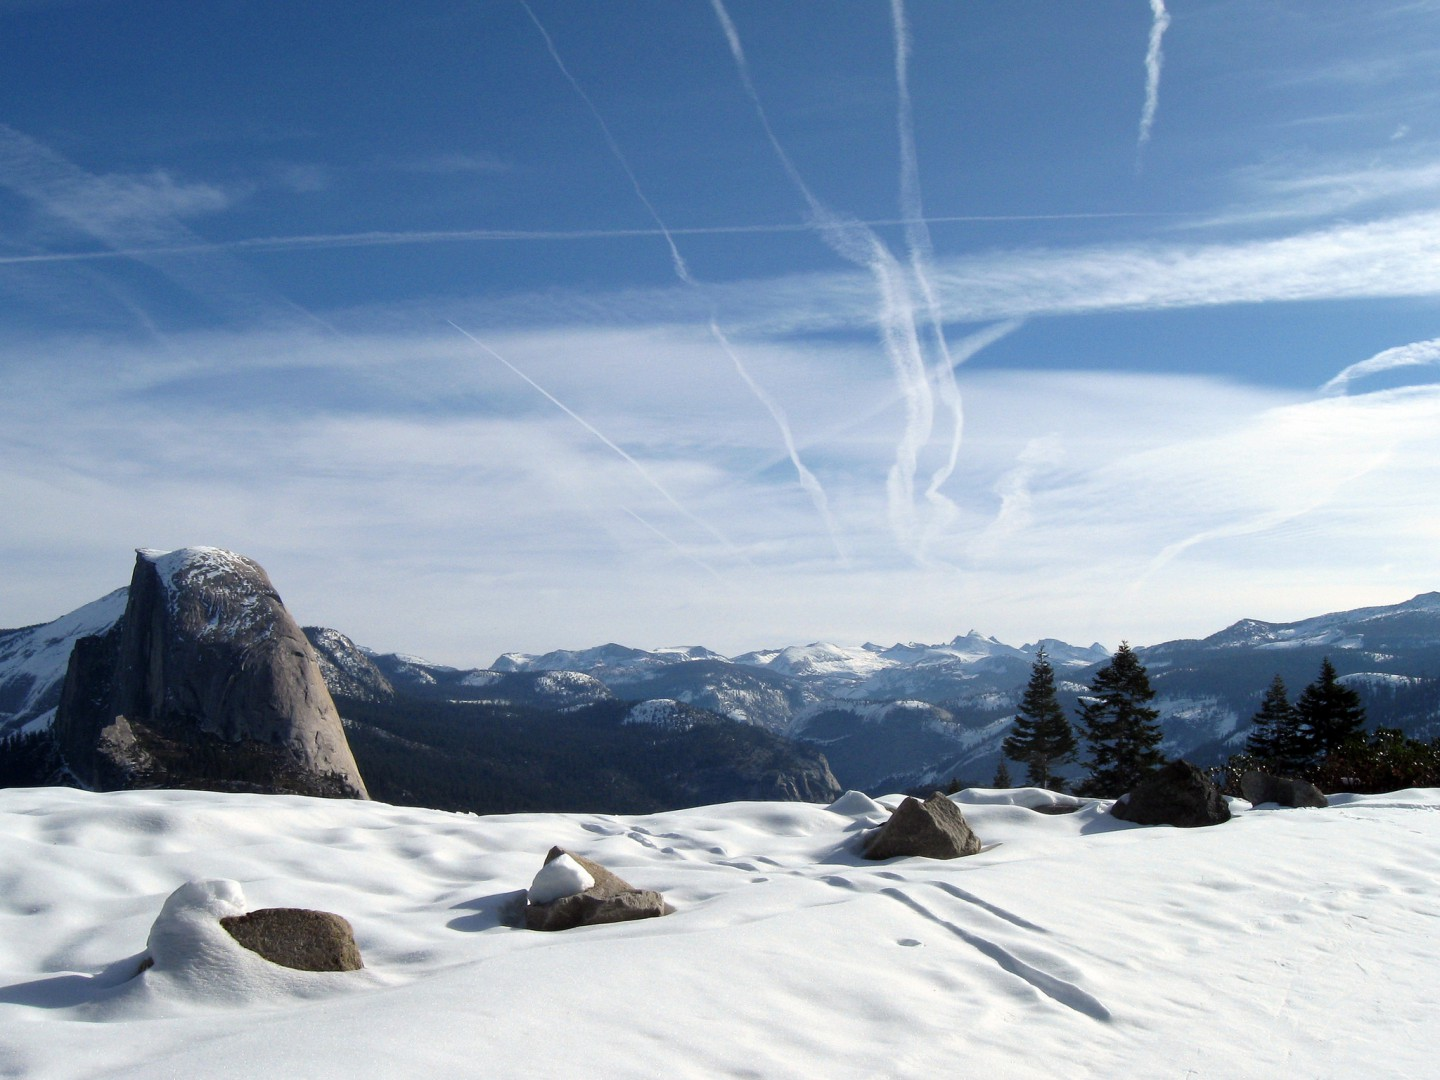 Yosemite back country skiing